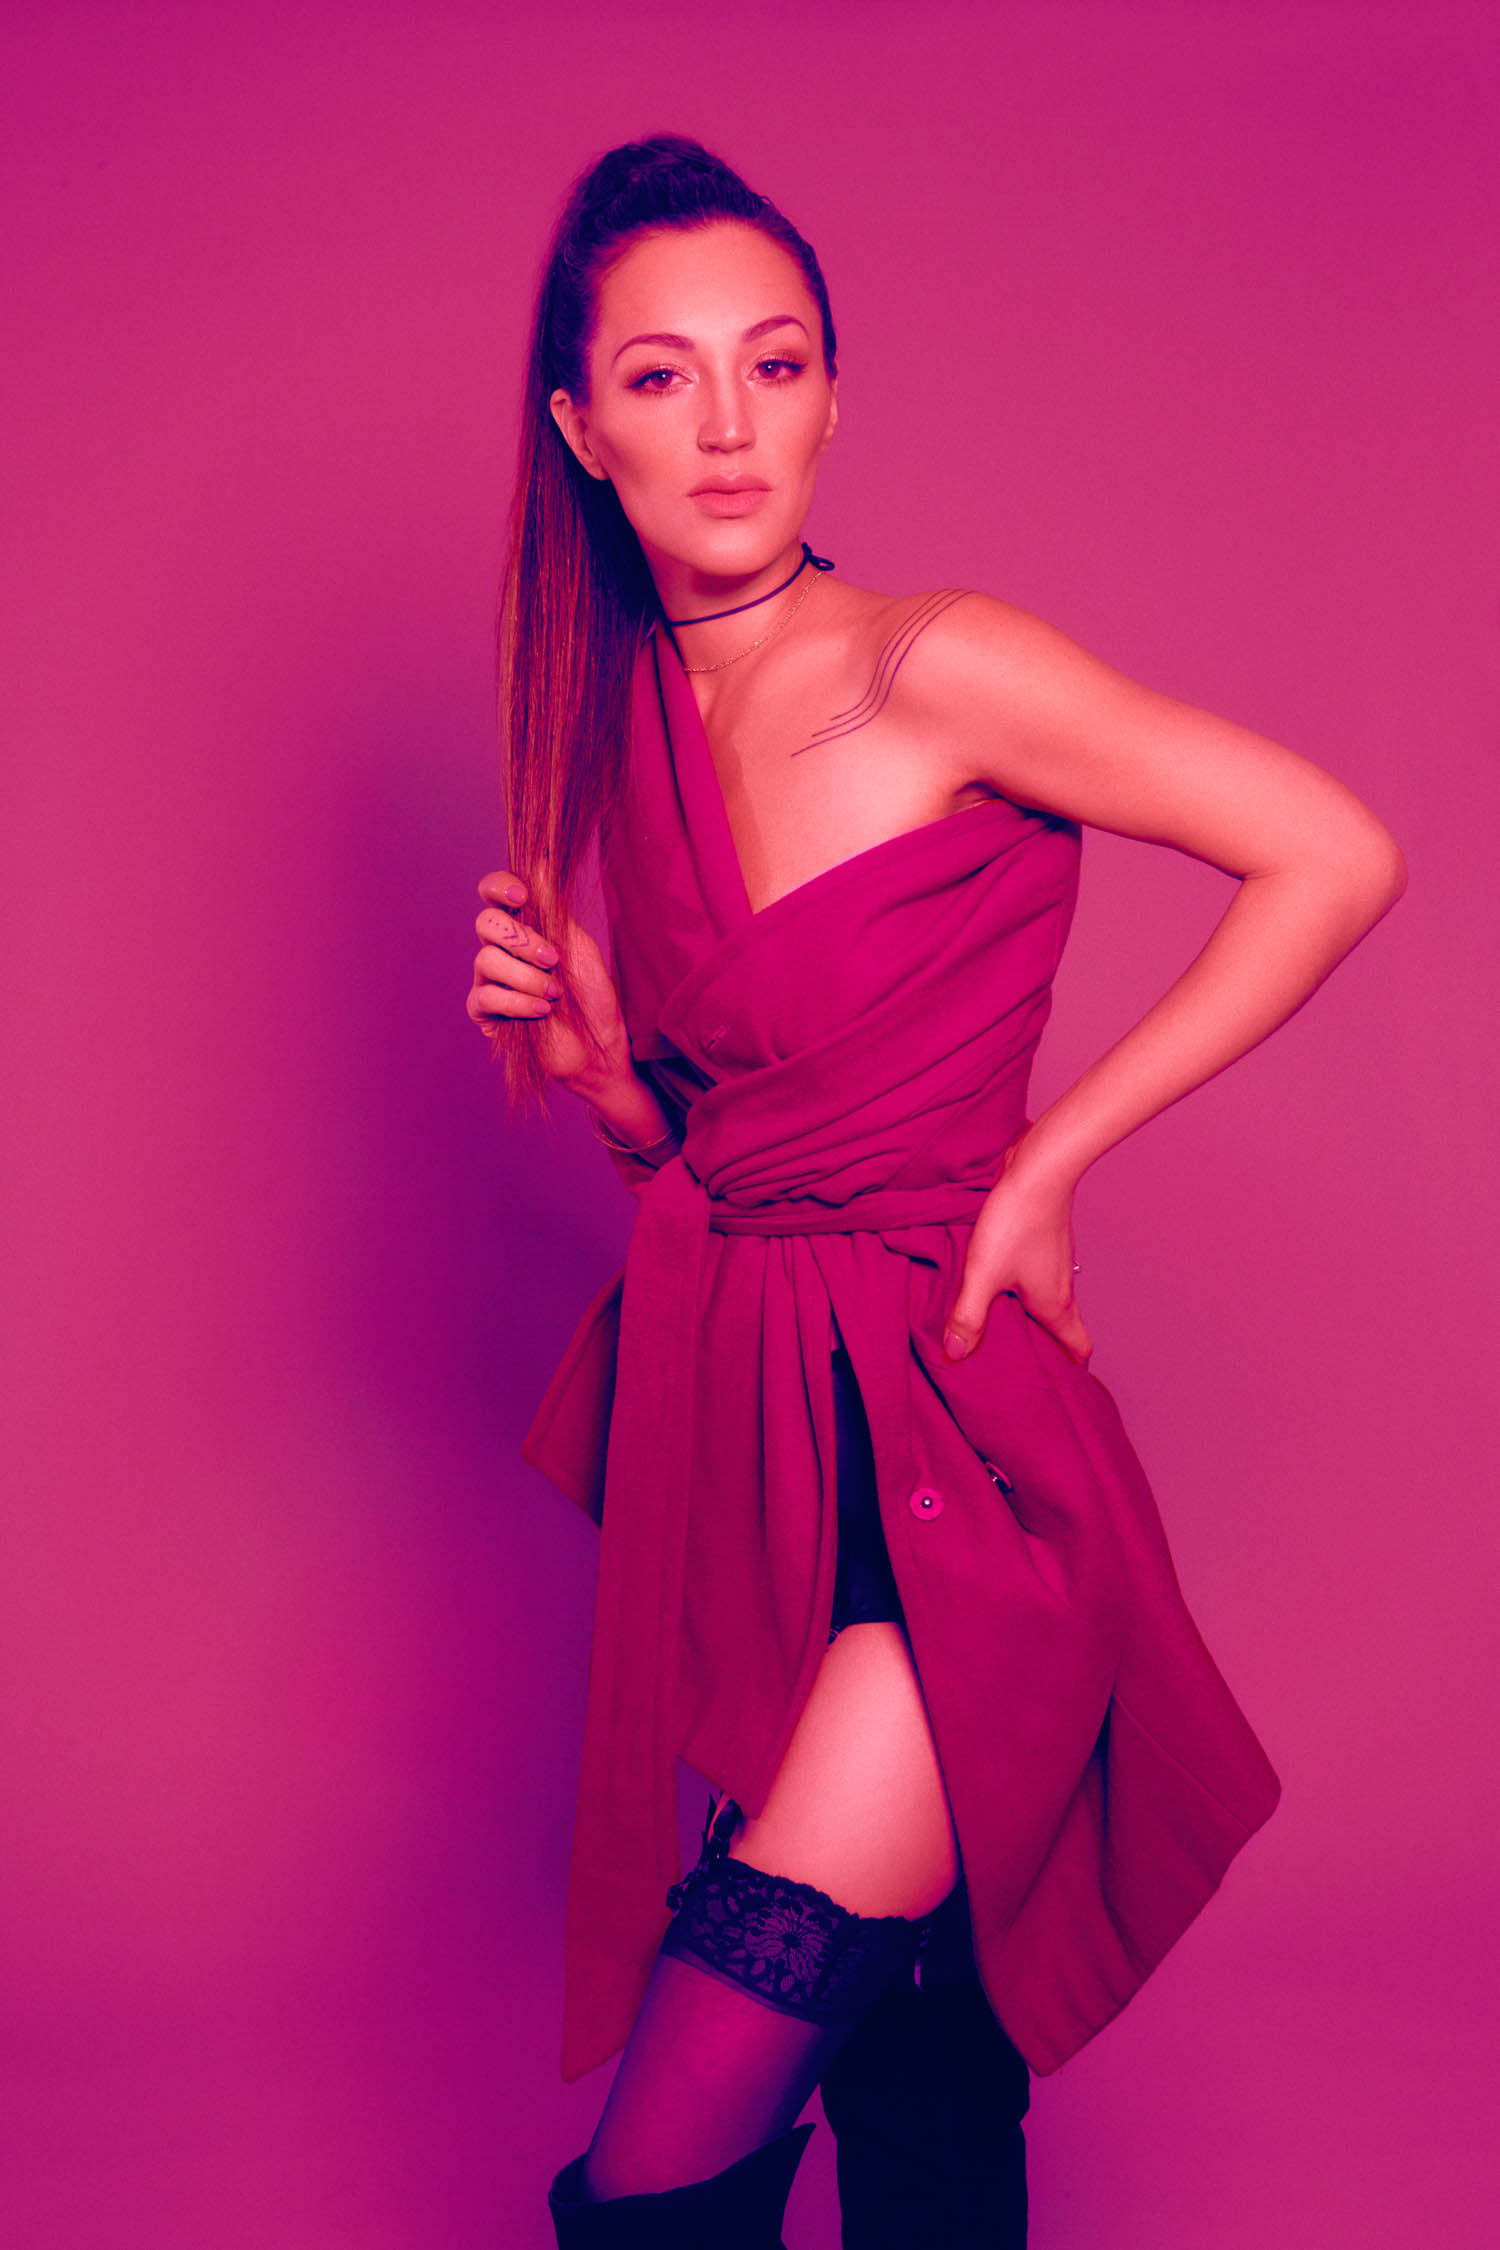 Boudoir session on pink background with pink trench coat